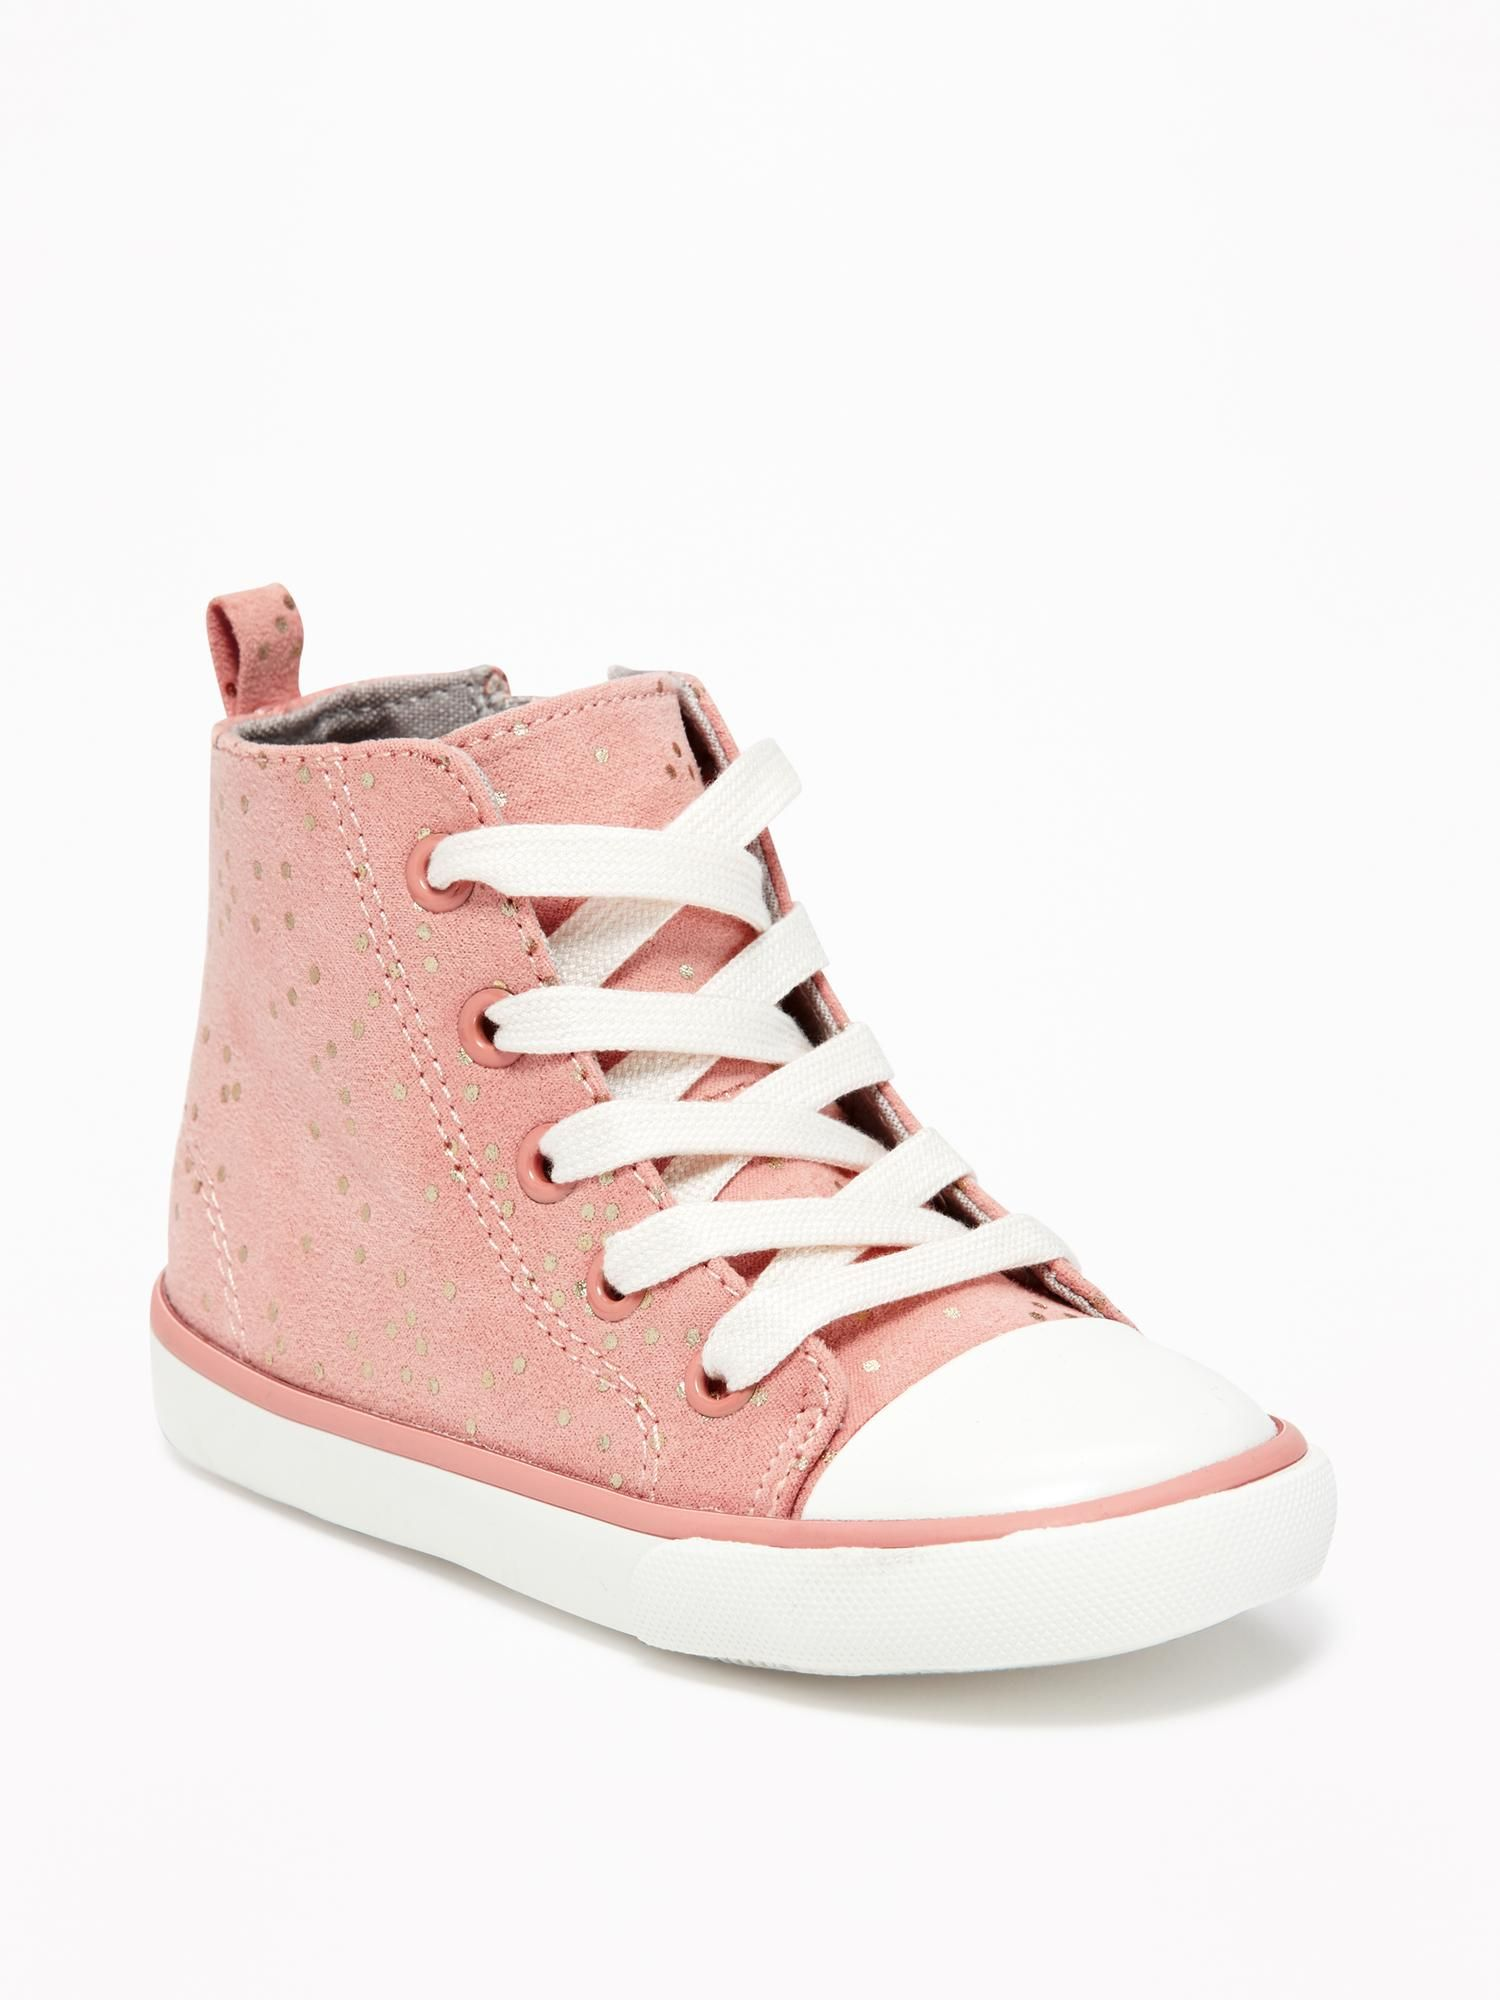 Sparkle Patterned High Tops For Toddler Old Navy